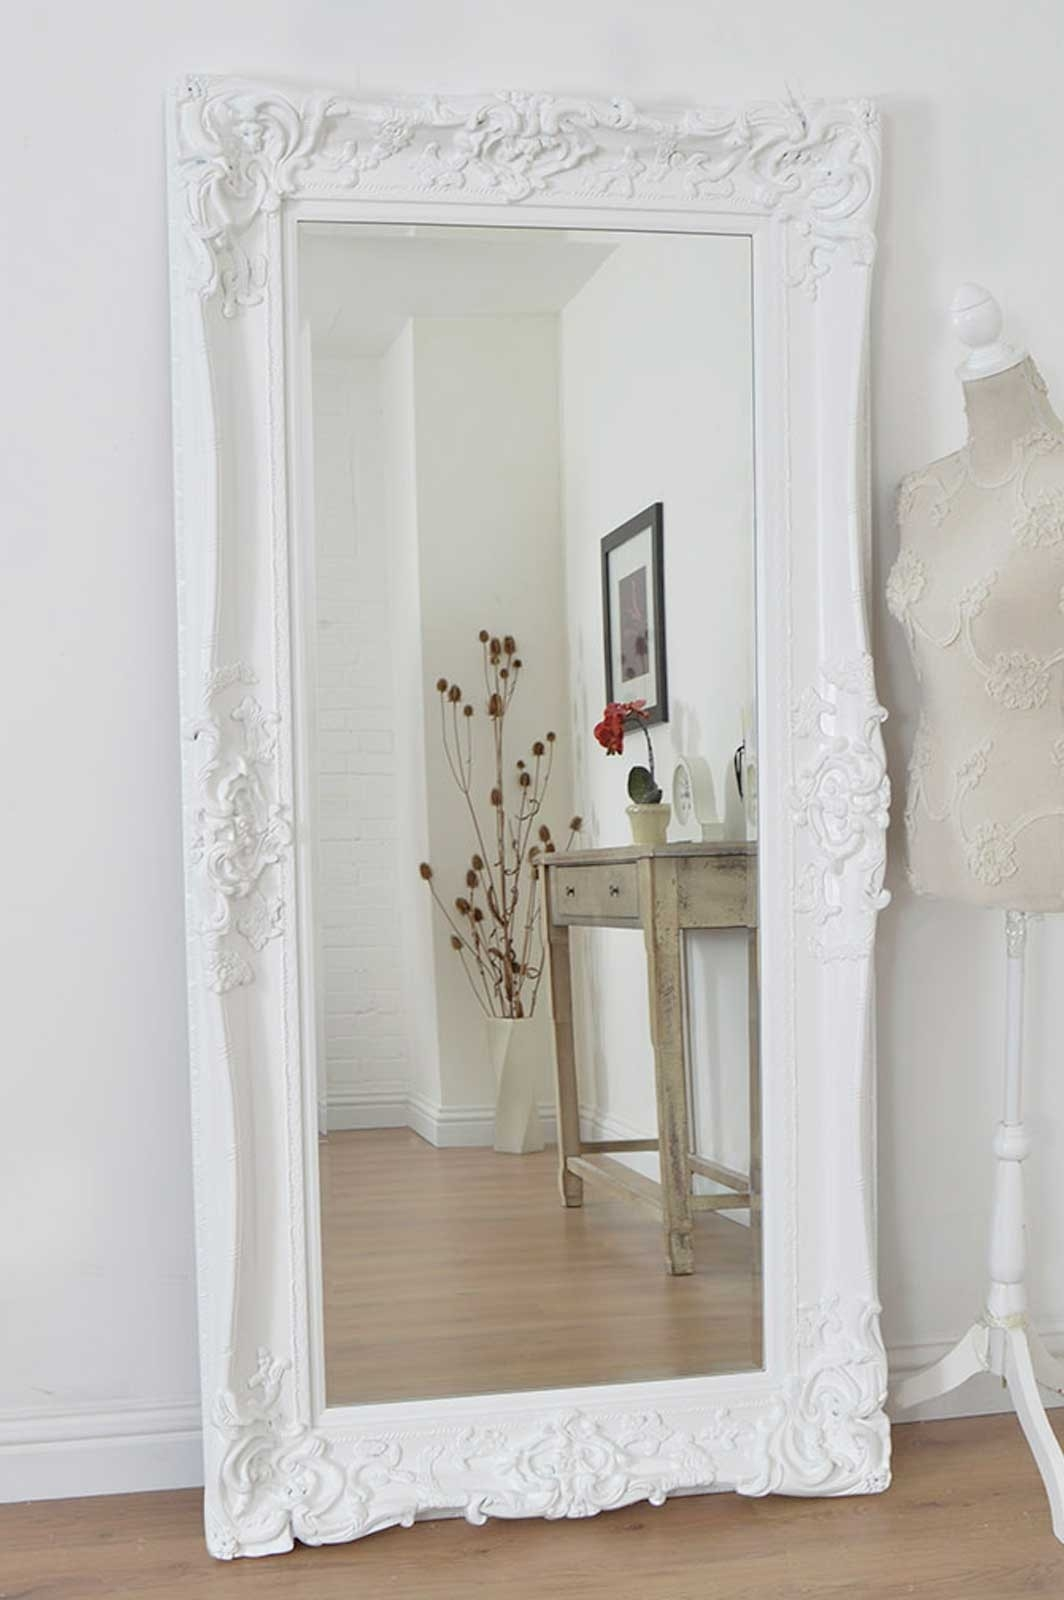 Large White Mirrors For Walls Mirror Design Ideas Regarding Ornate White Mirror (Image 6 of 15)